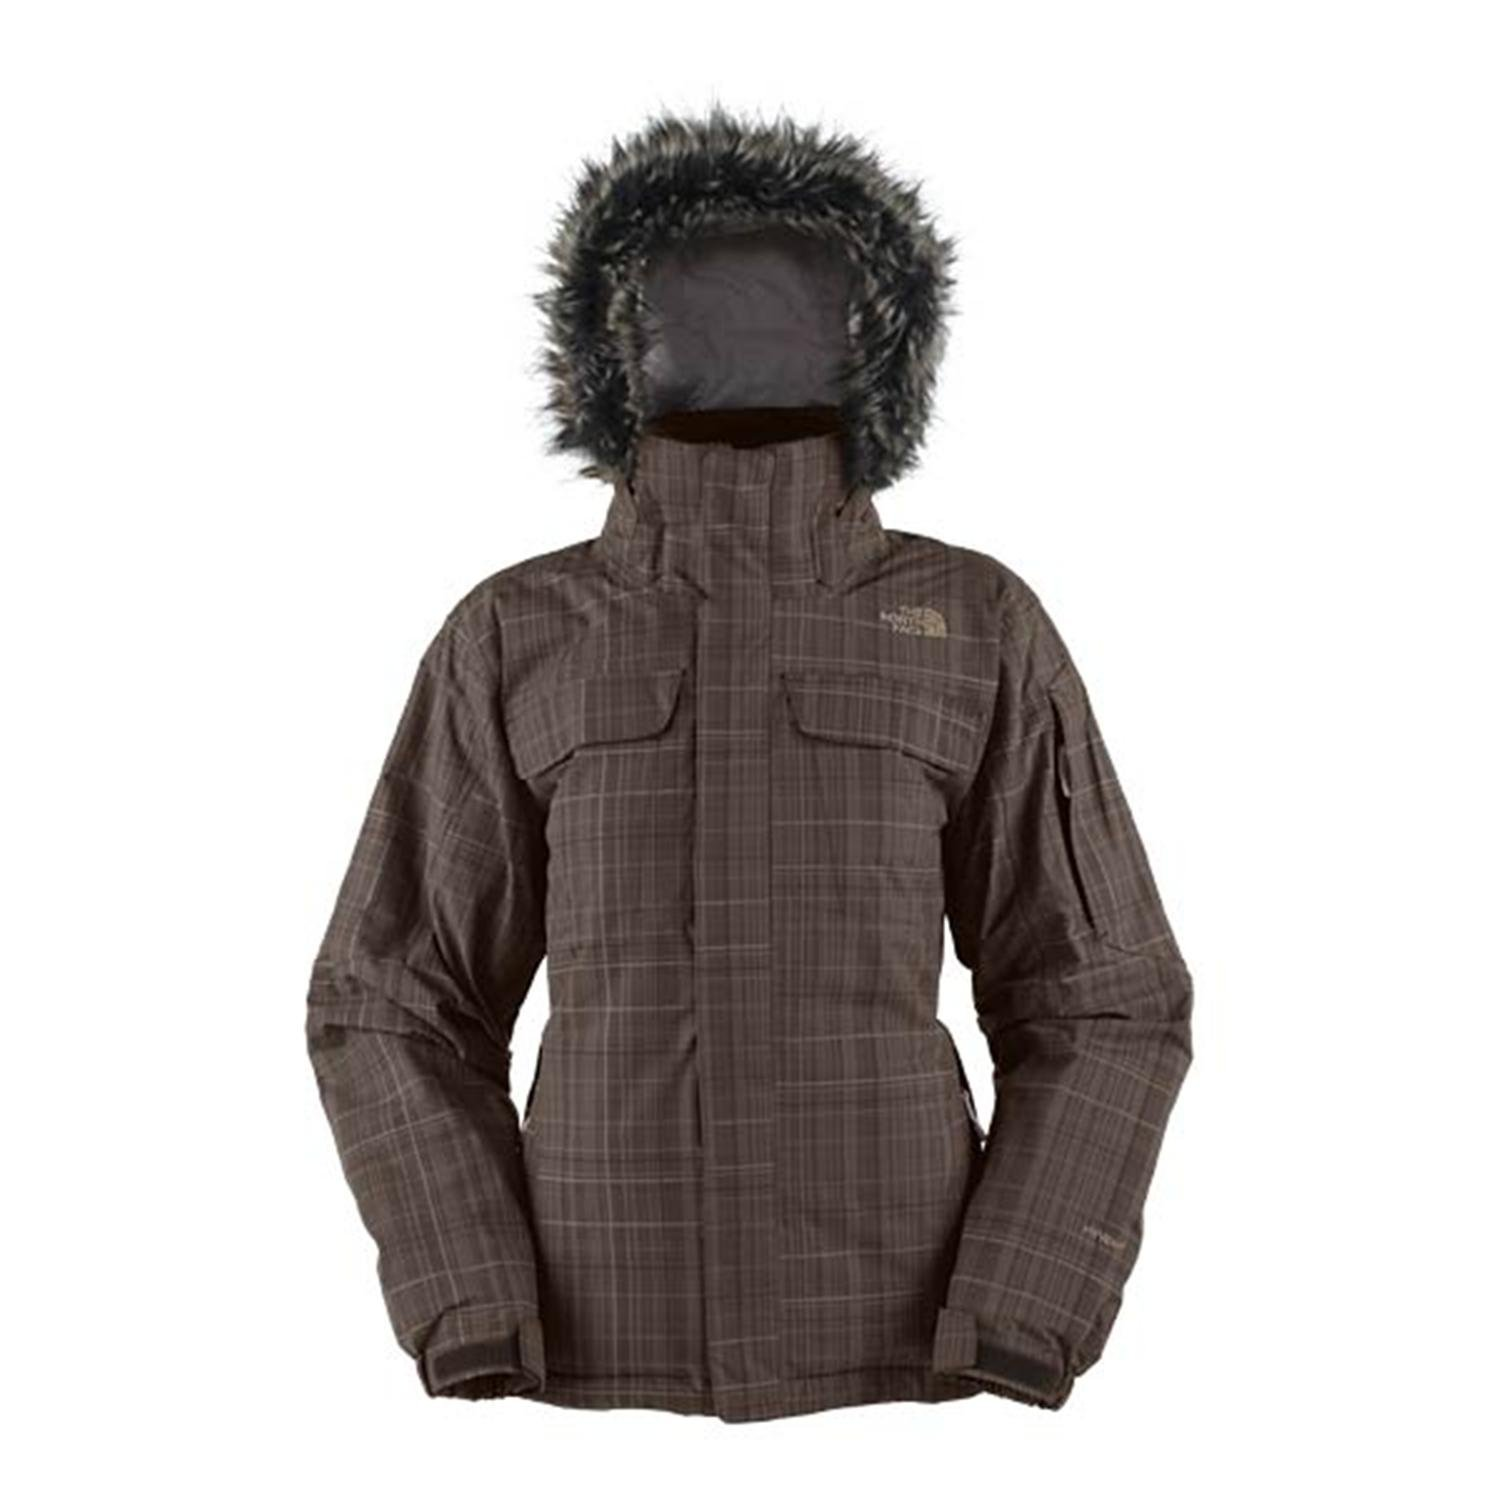 North face womens jackets outlet